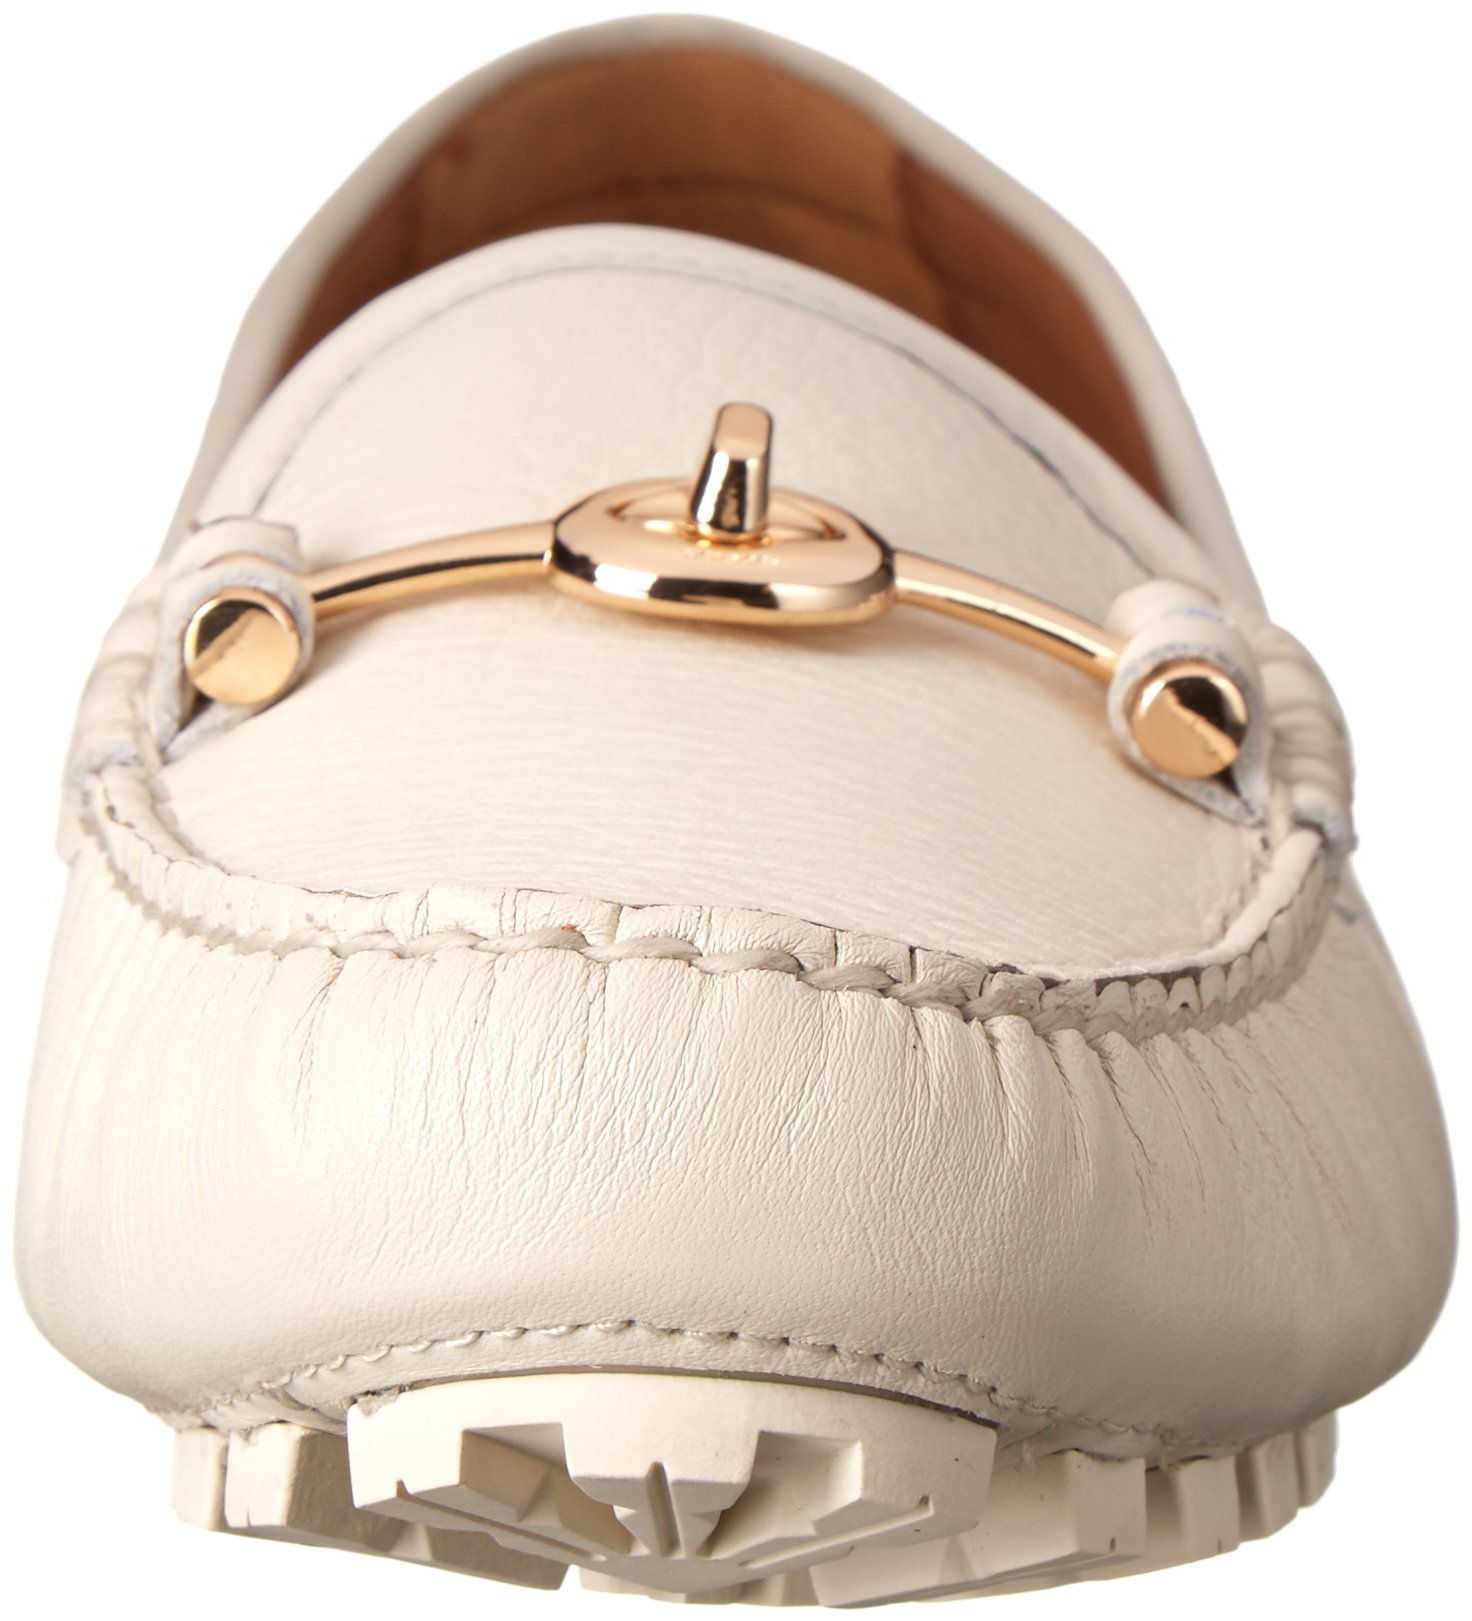 COACH Women's Arlene Chalk Pebble Grain Leather Flat by Coach (Image #4)